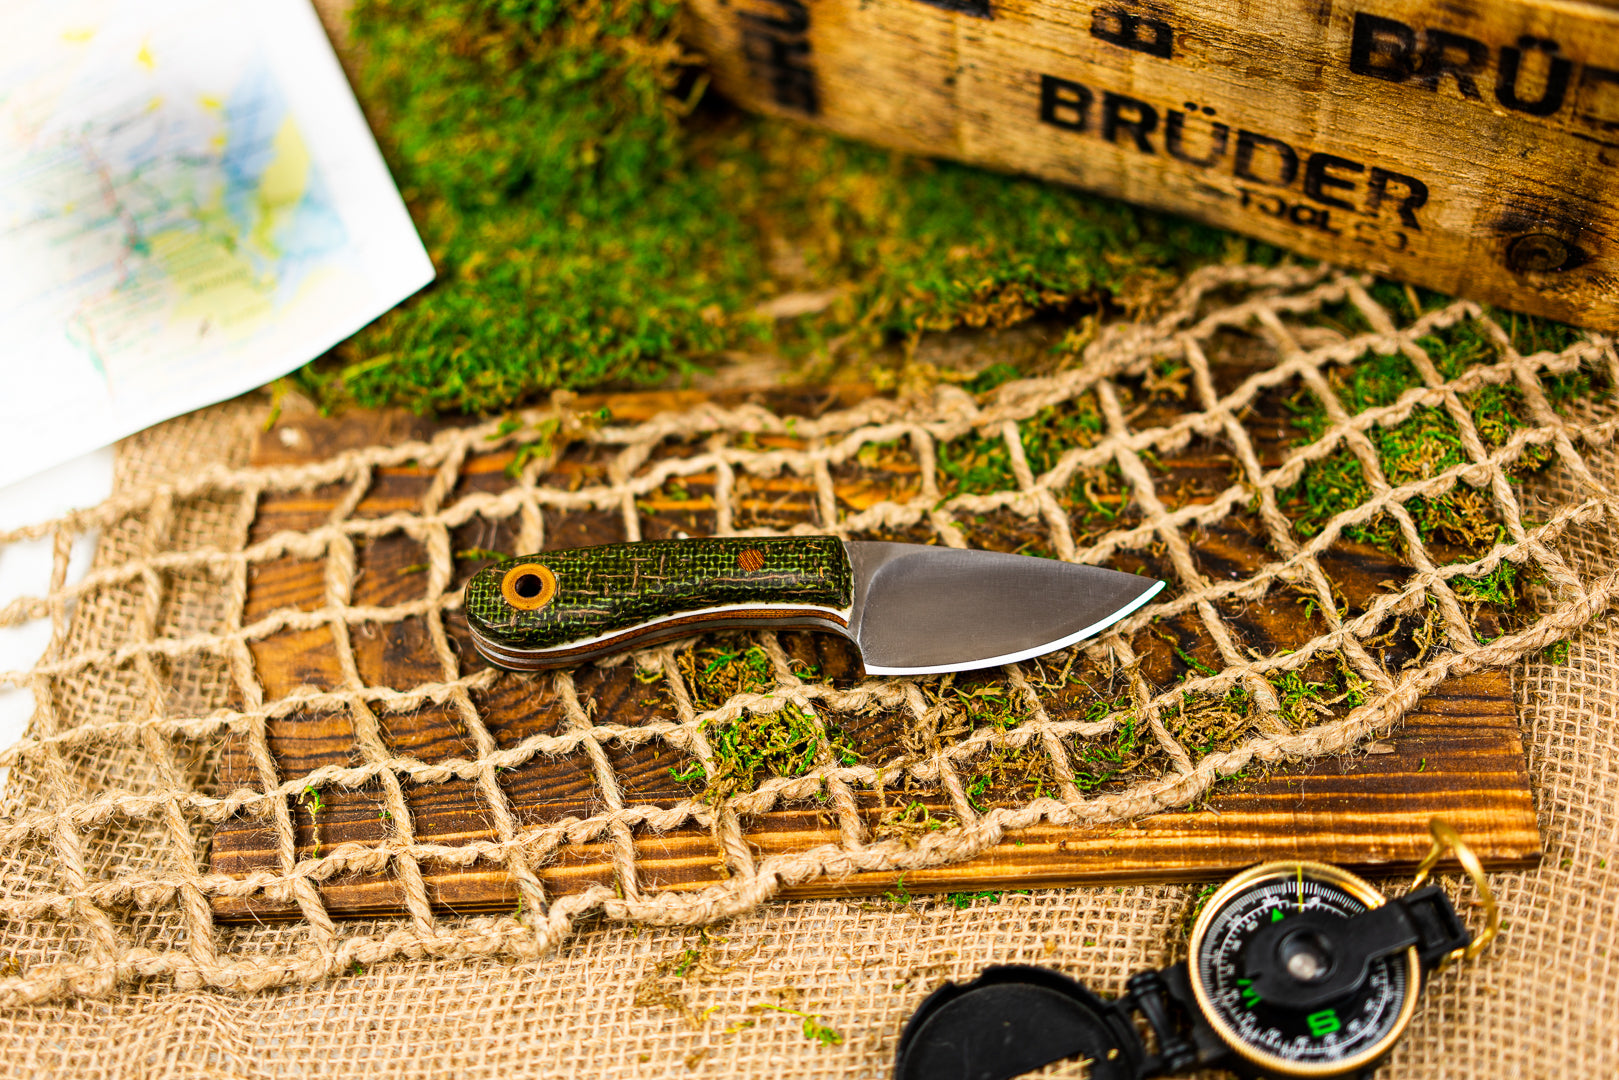 Skinner/EDC knife - Green Burlatex